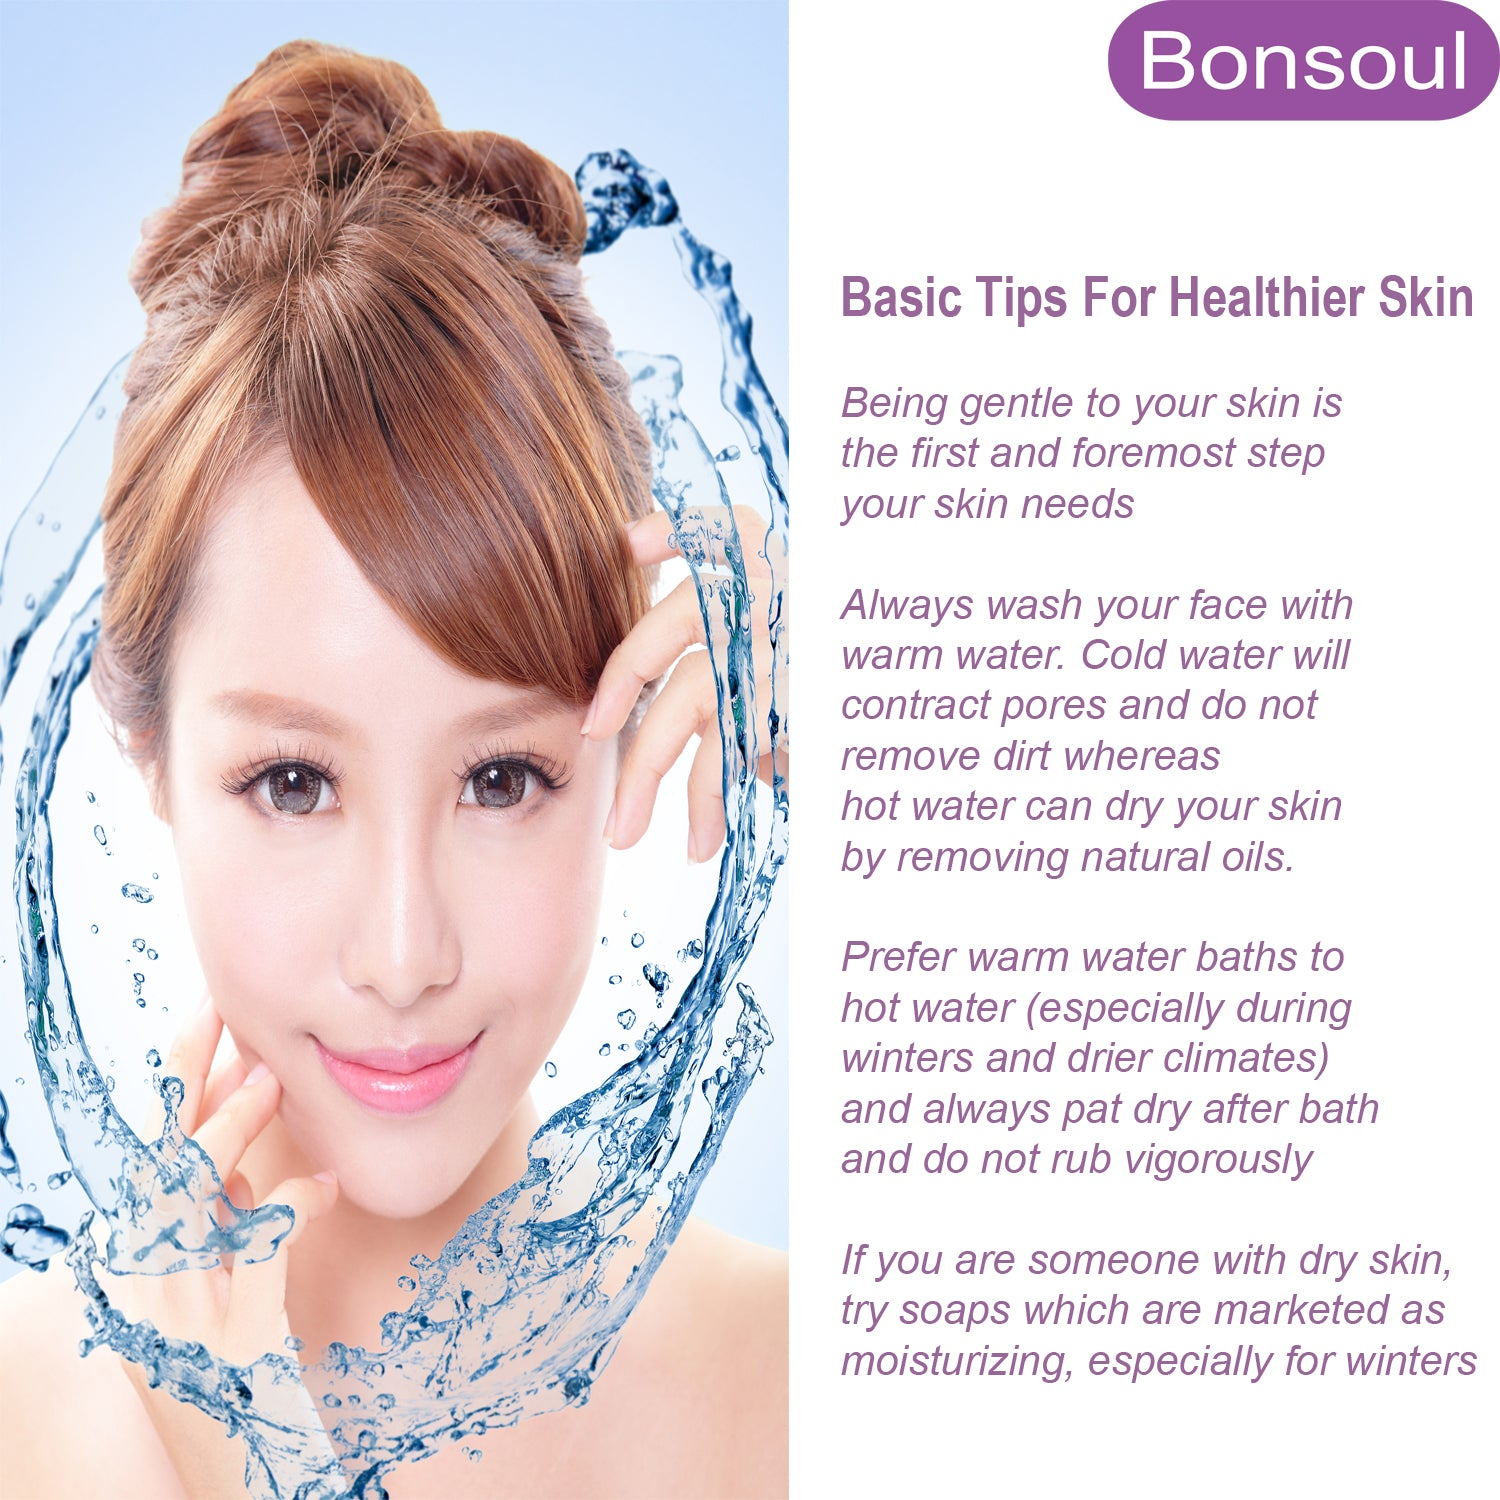 Bonsoul Basic Skin Care Tips